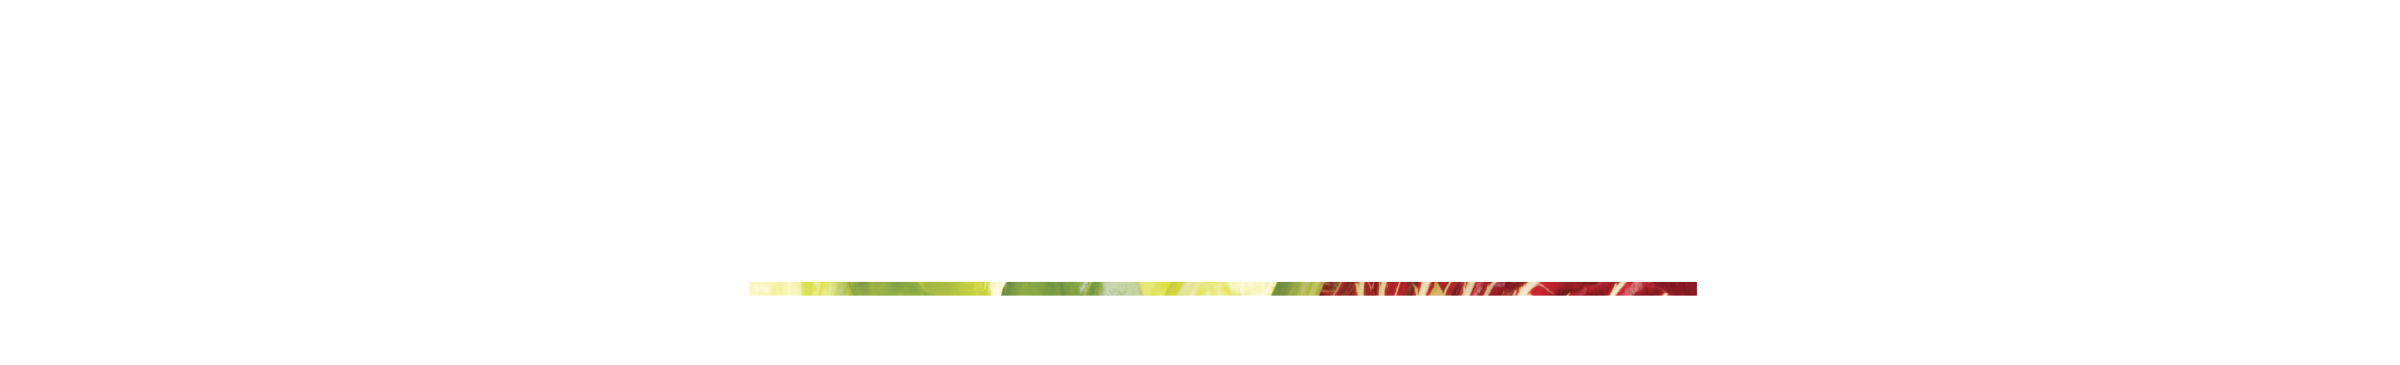 WRAPS.png